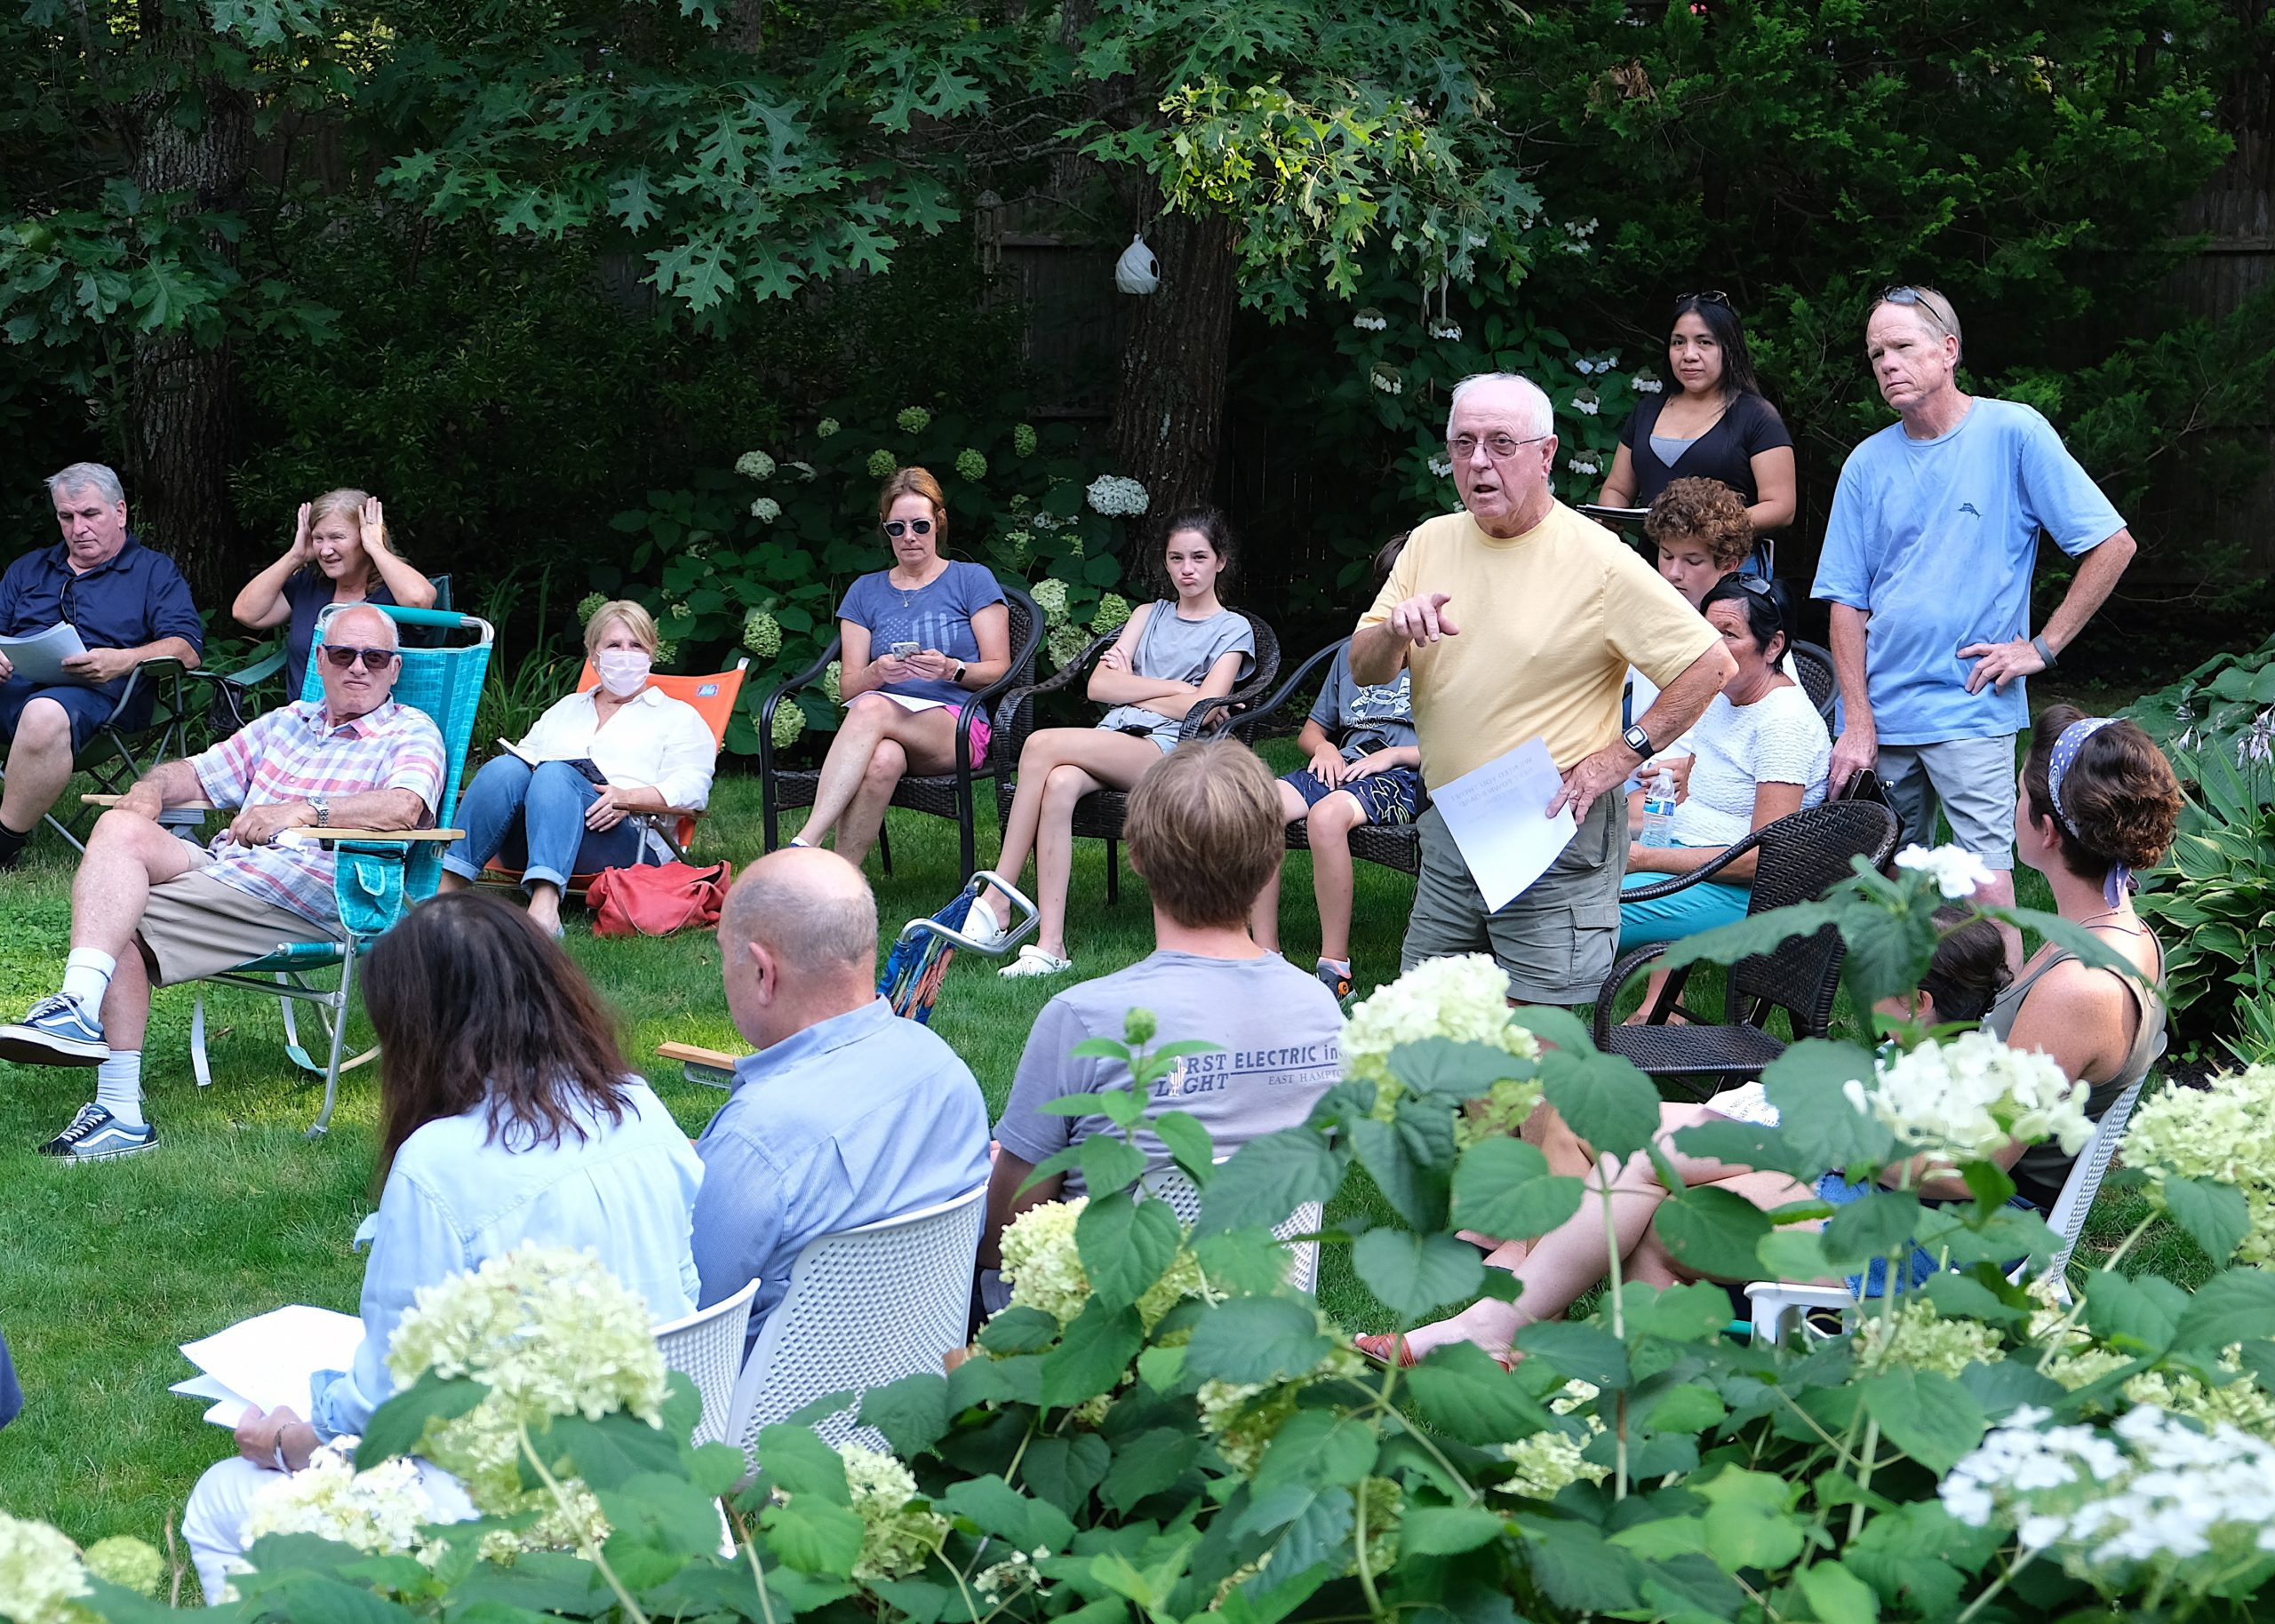 Residents of the Springs neighborhood surrounding a wooded lot the town has proposed putting a cell tower on met on Monday evening to strategize how to most effectively oppose the project.